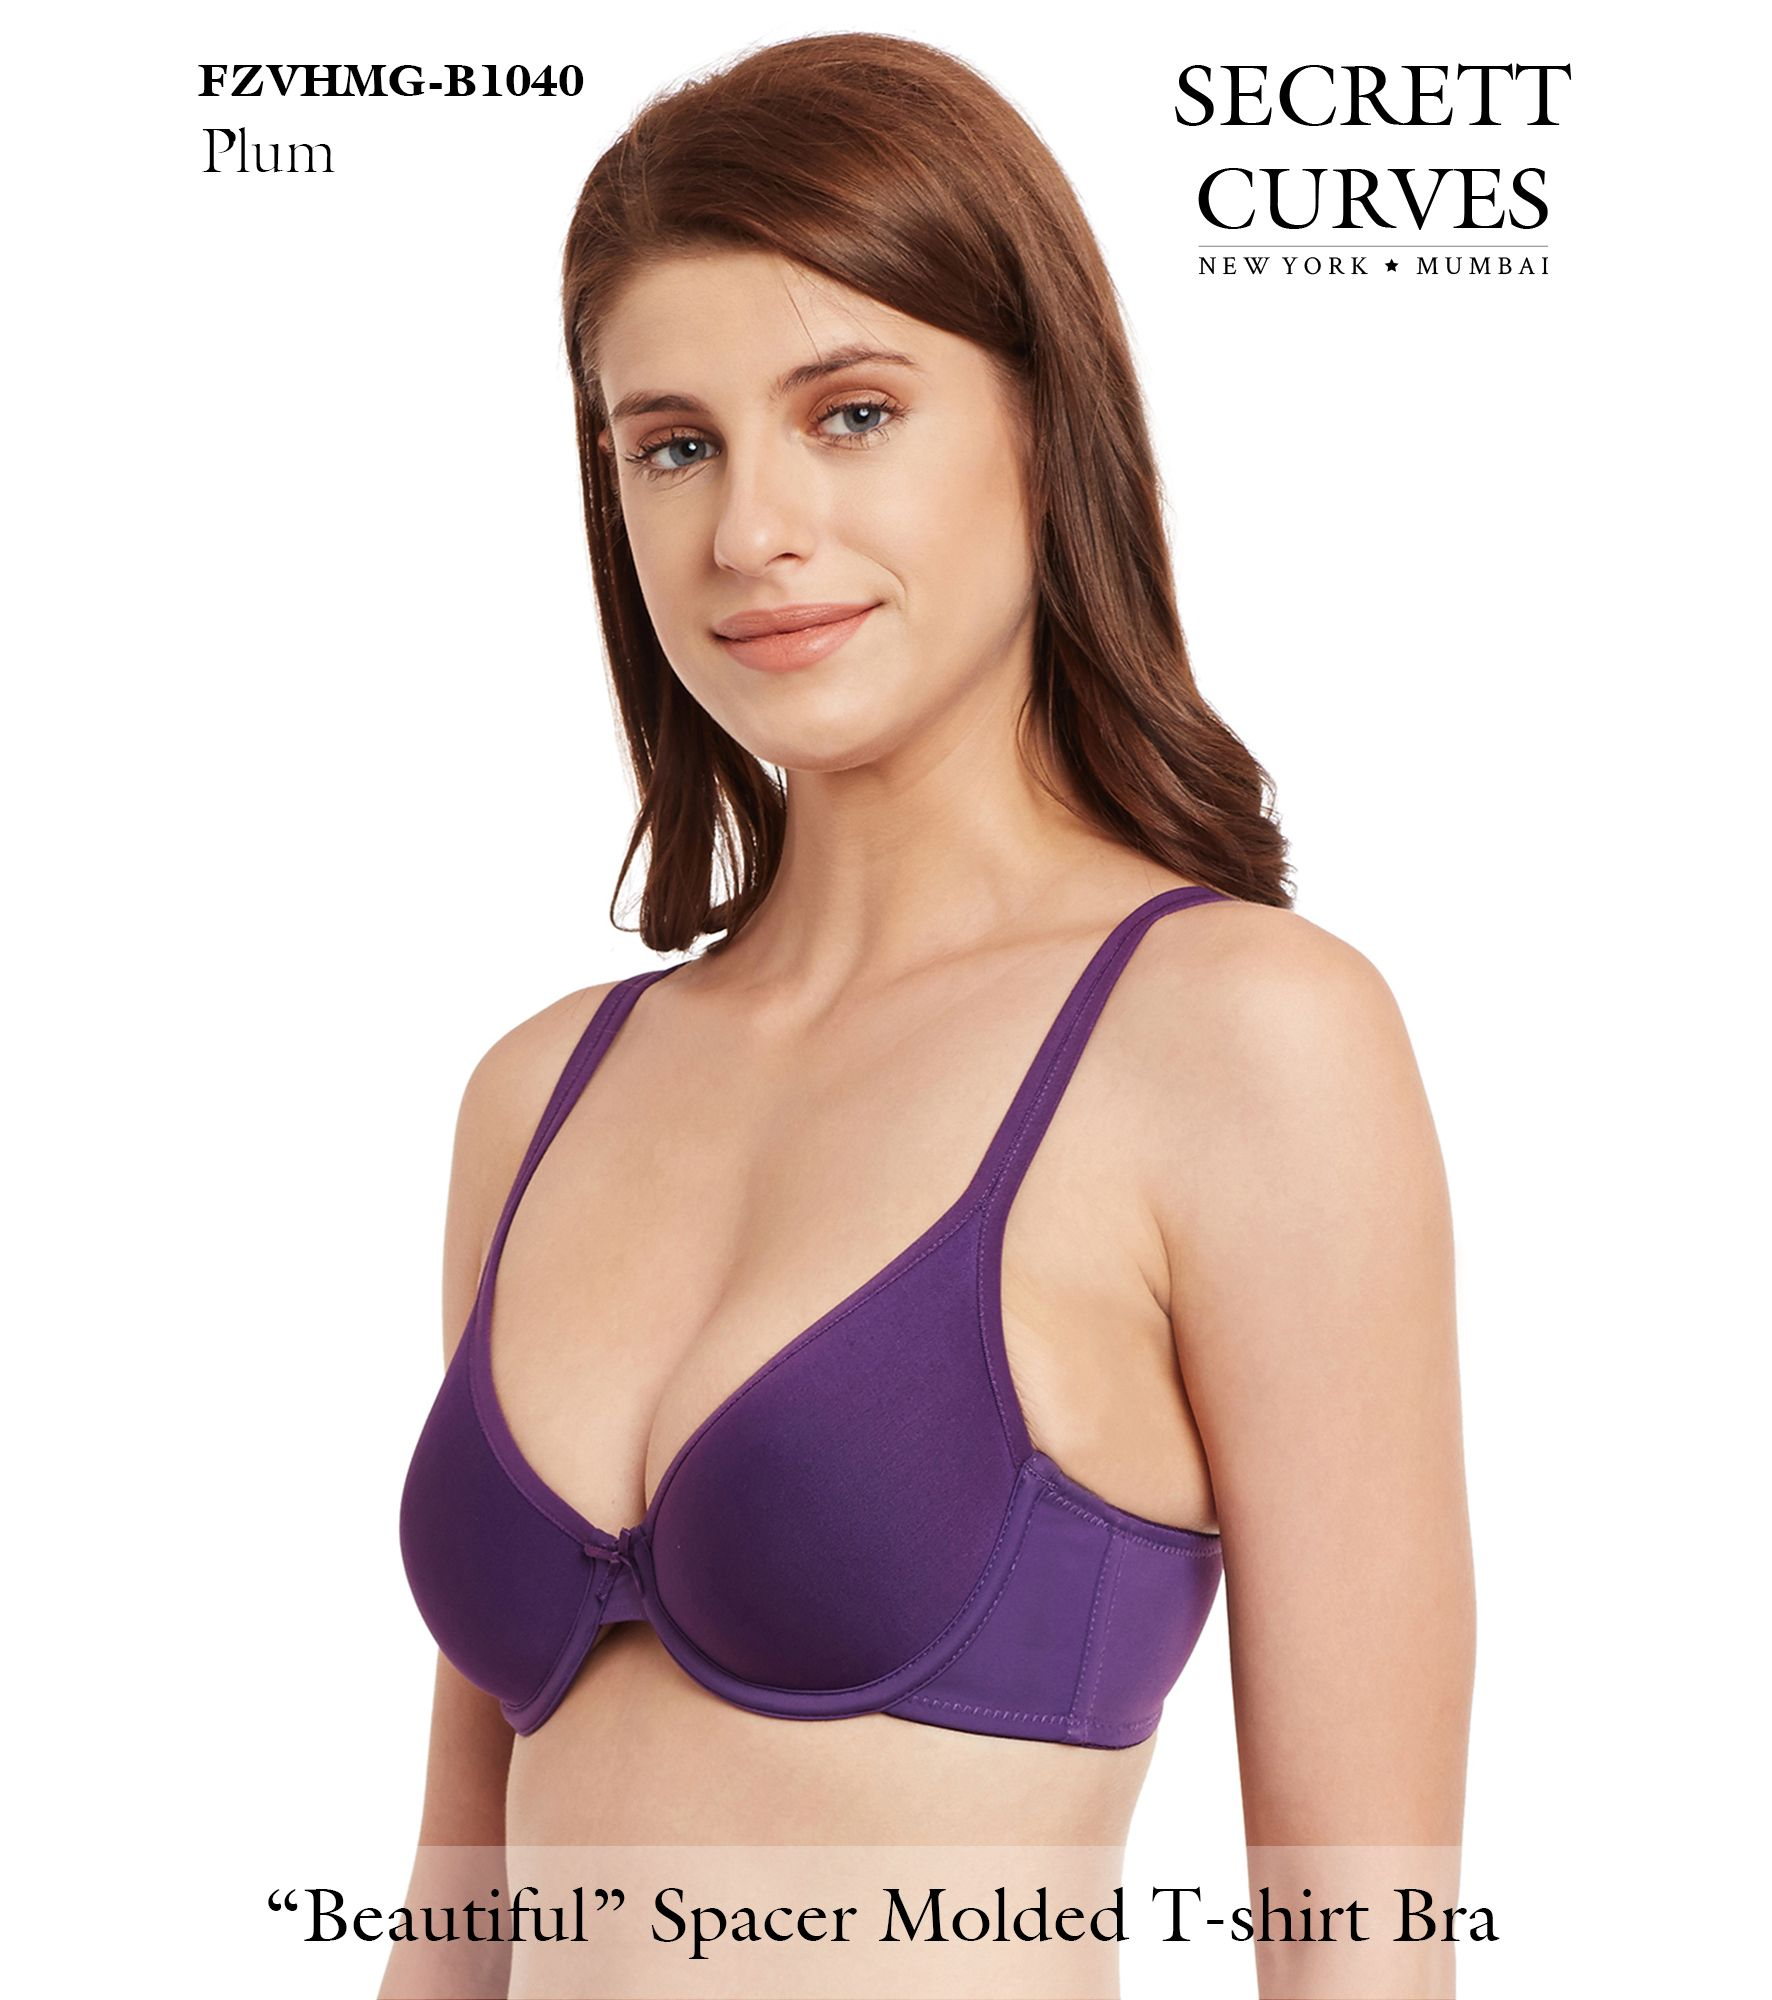 47afc3641 Secrett Curves Seduction Spacer Underwire Full Coverage Padded Cup T Shirt  Bra Seduction Spacer Bra by Secrett Curves from New York  Our Seduction  Spacer ...